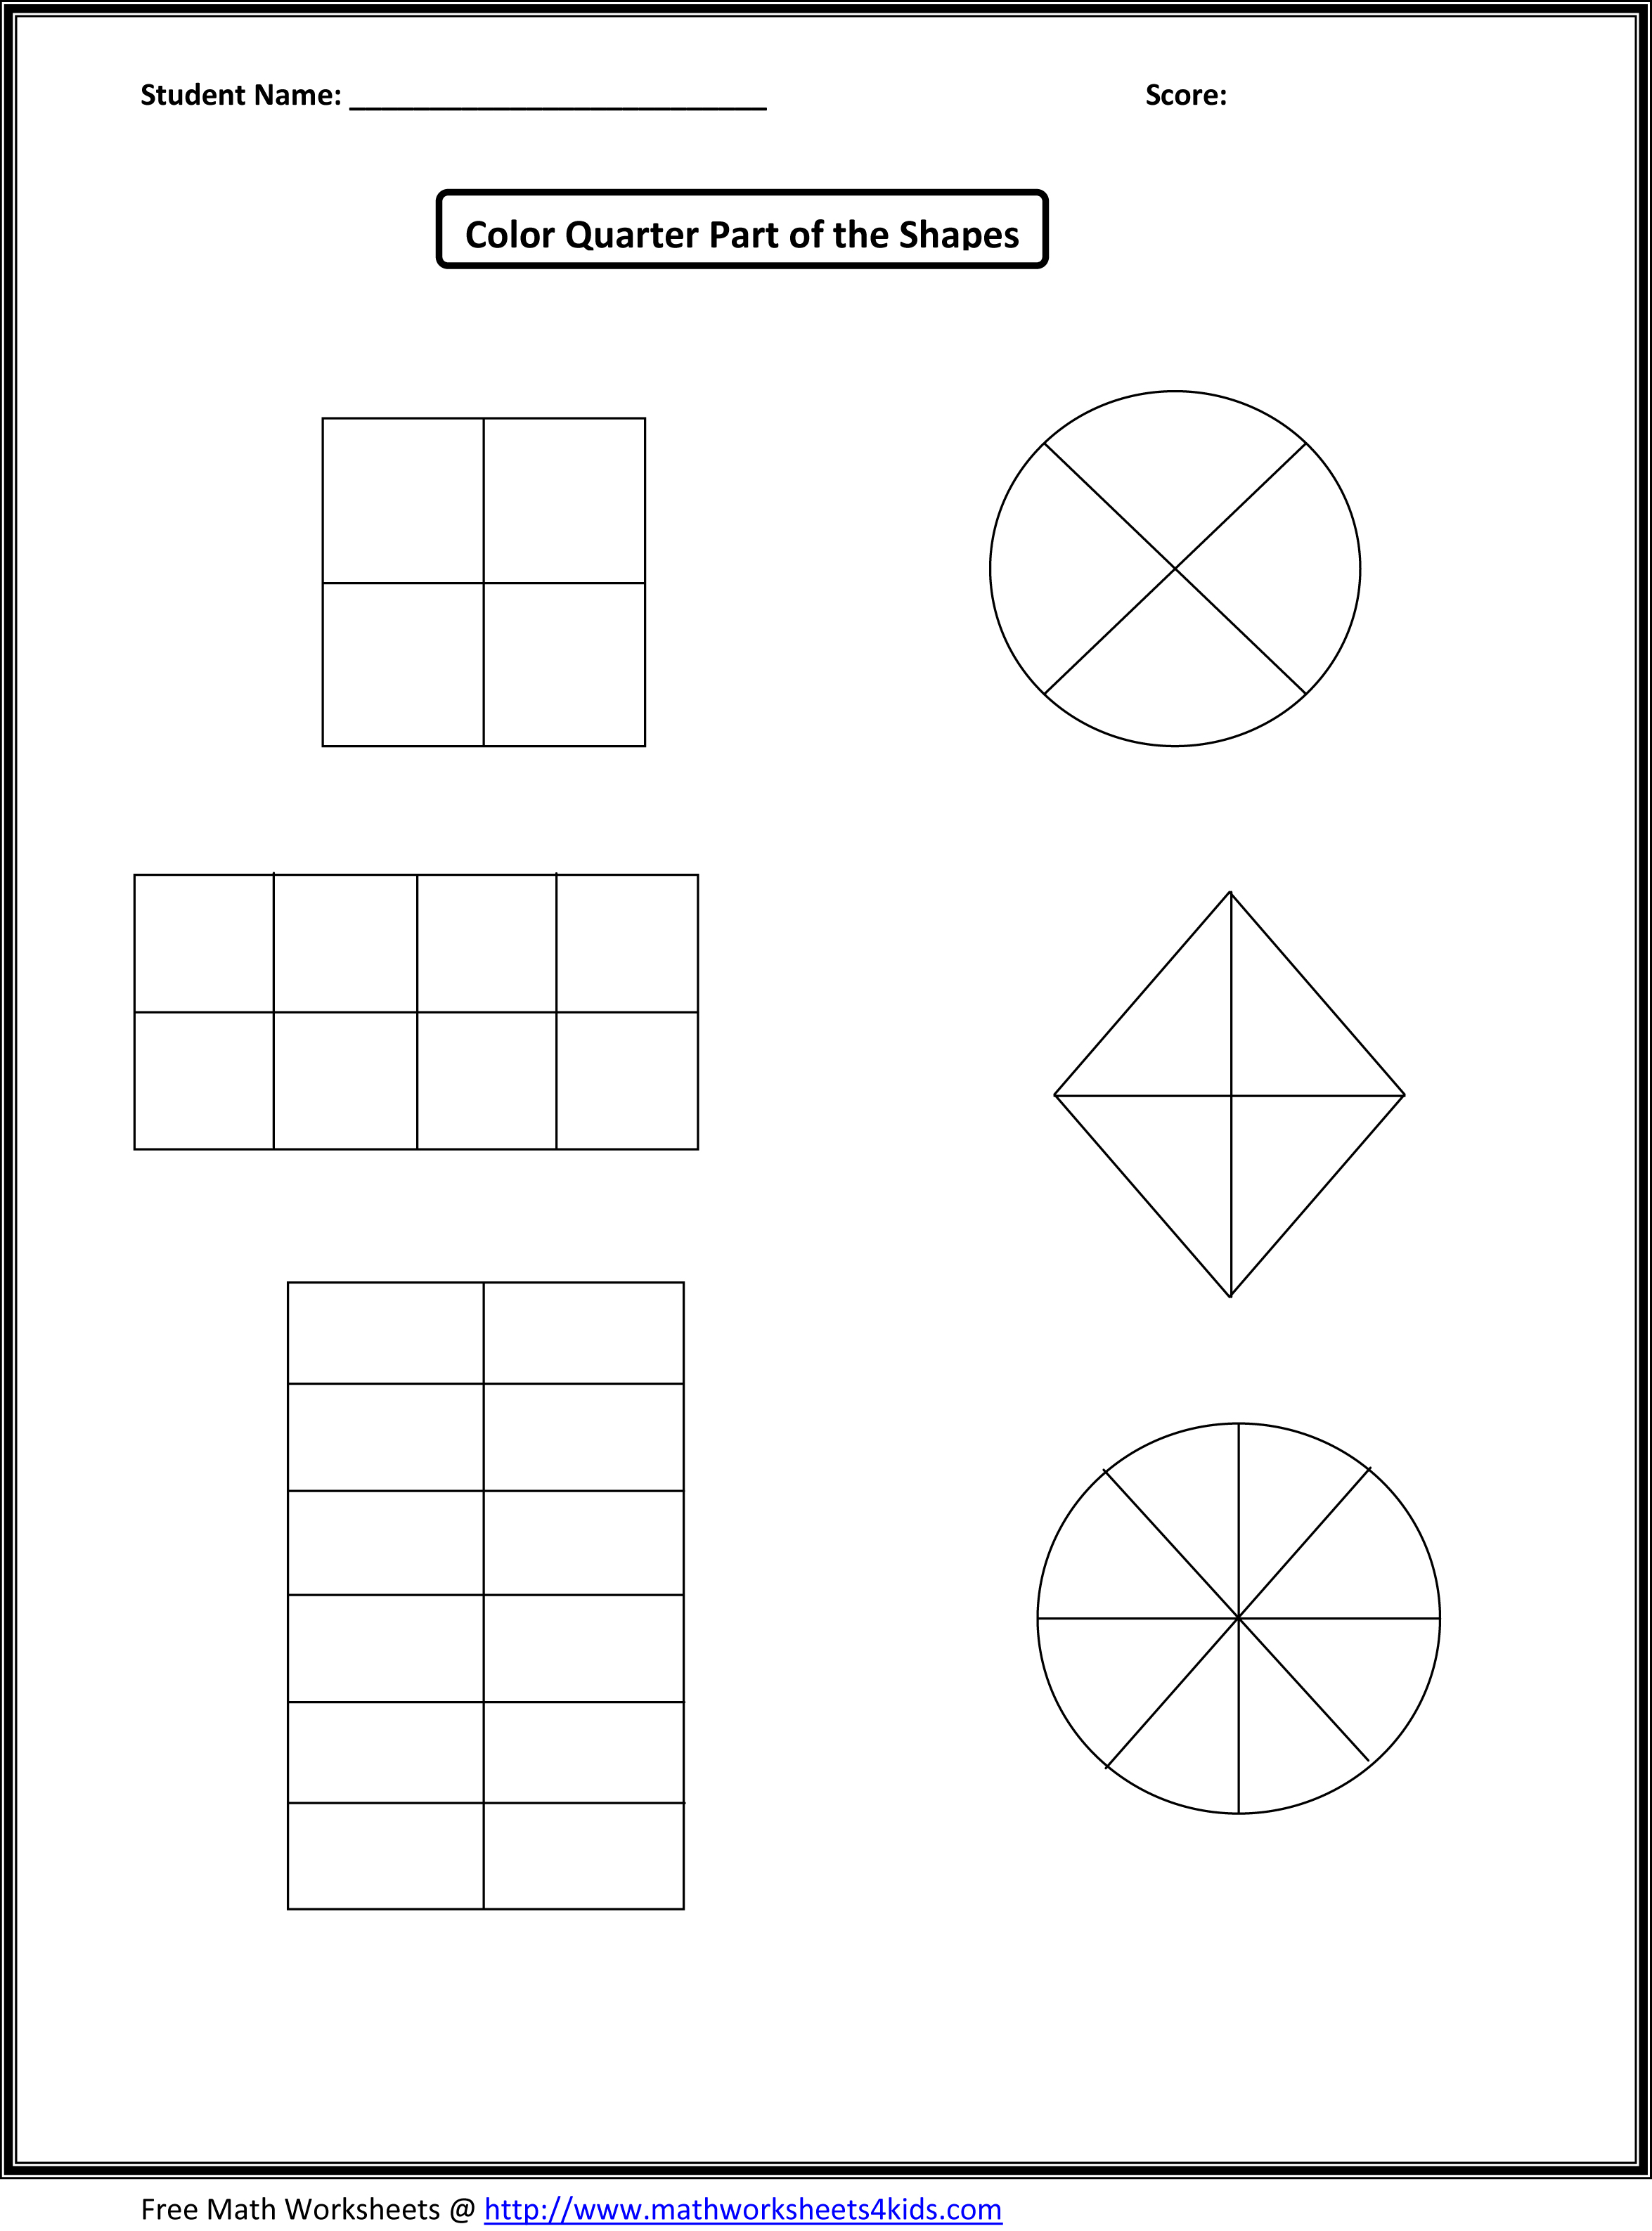 Worksheet 10541492 Shaded Fraction Worksheets Fraction FREE – Fractions Worksheets for Kindergarten